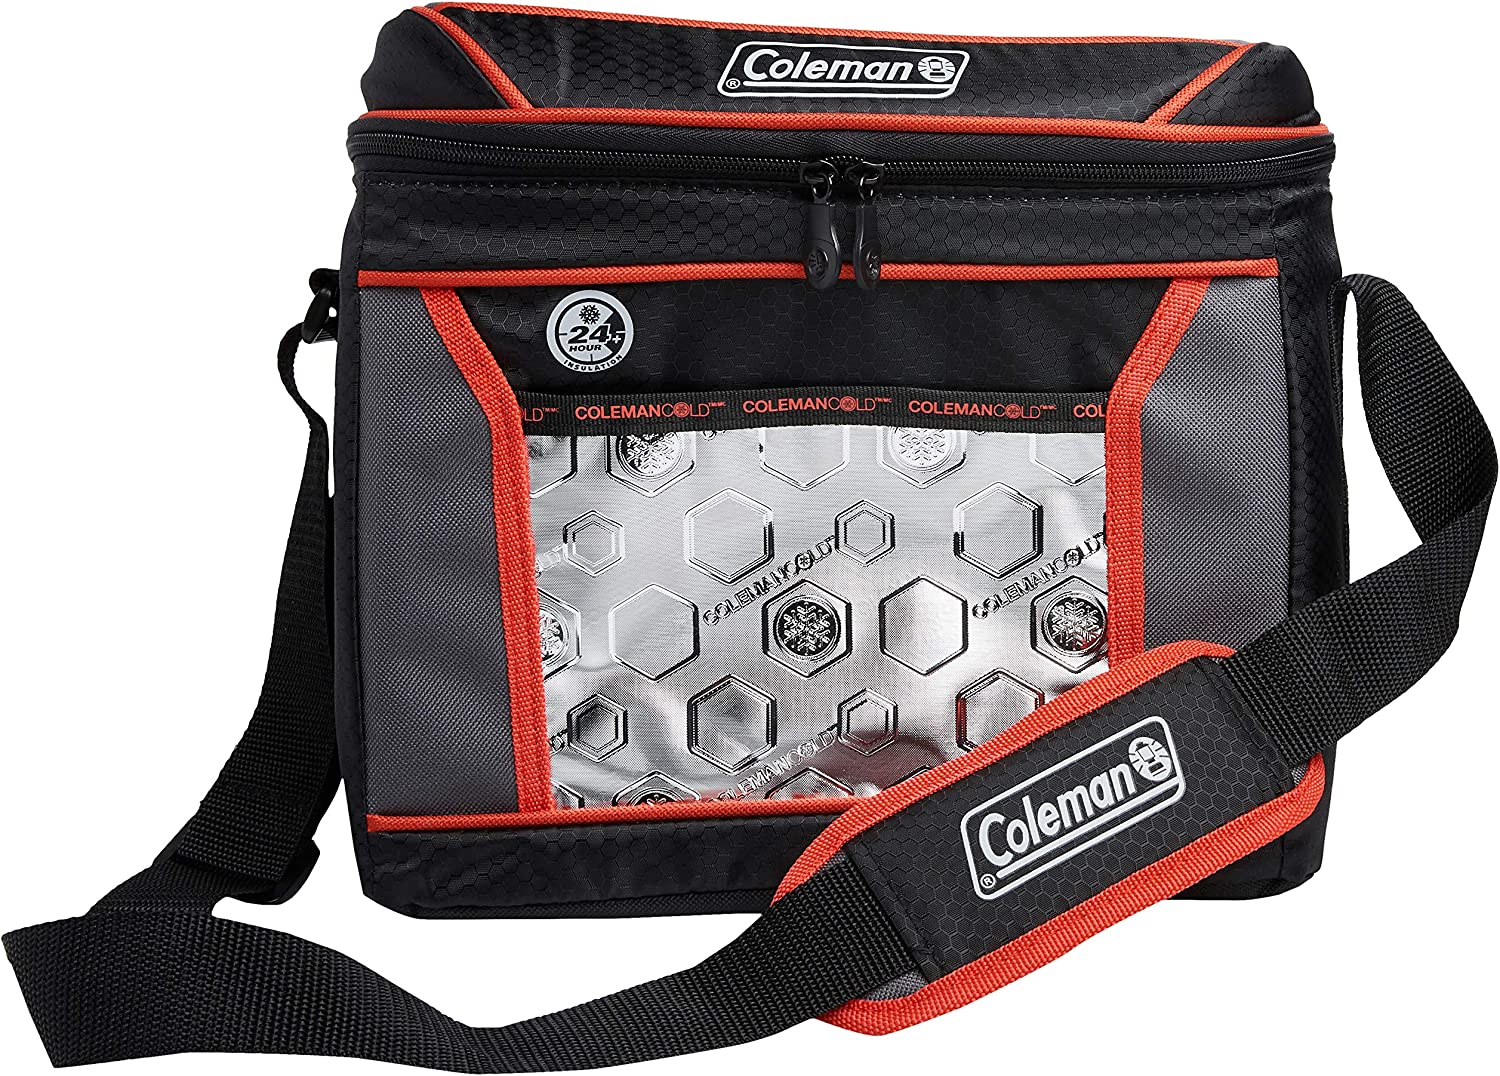 Coleman NCAA Soft-Sided Insulated Cooler Bag 16-Can Capacity University of Maryland